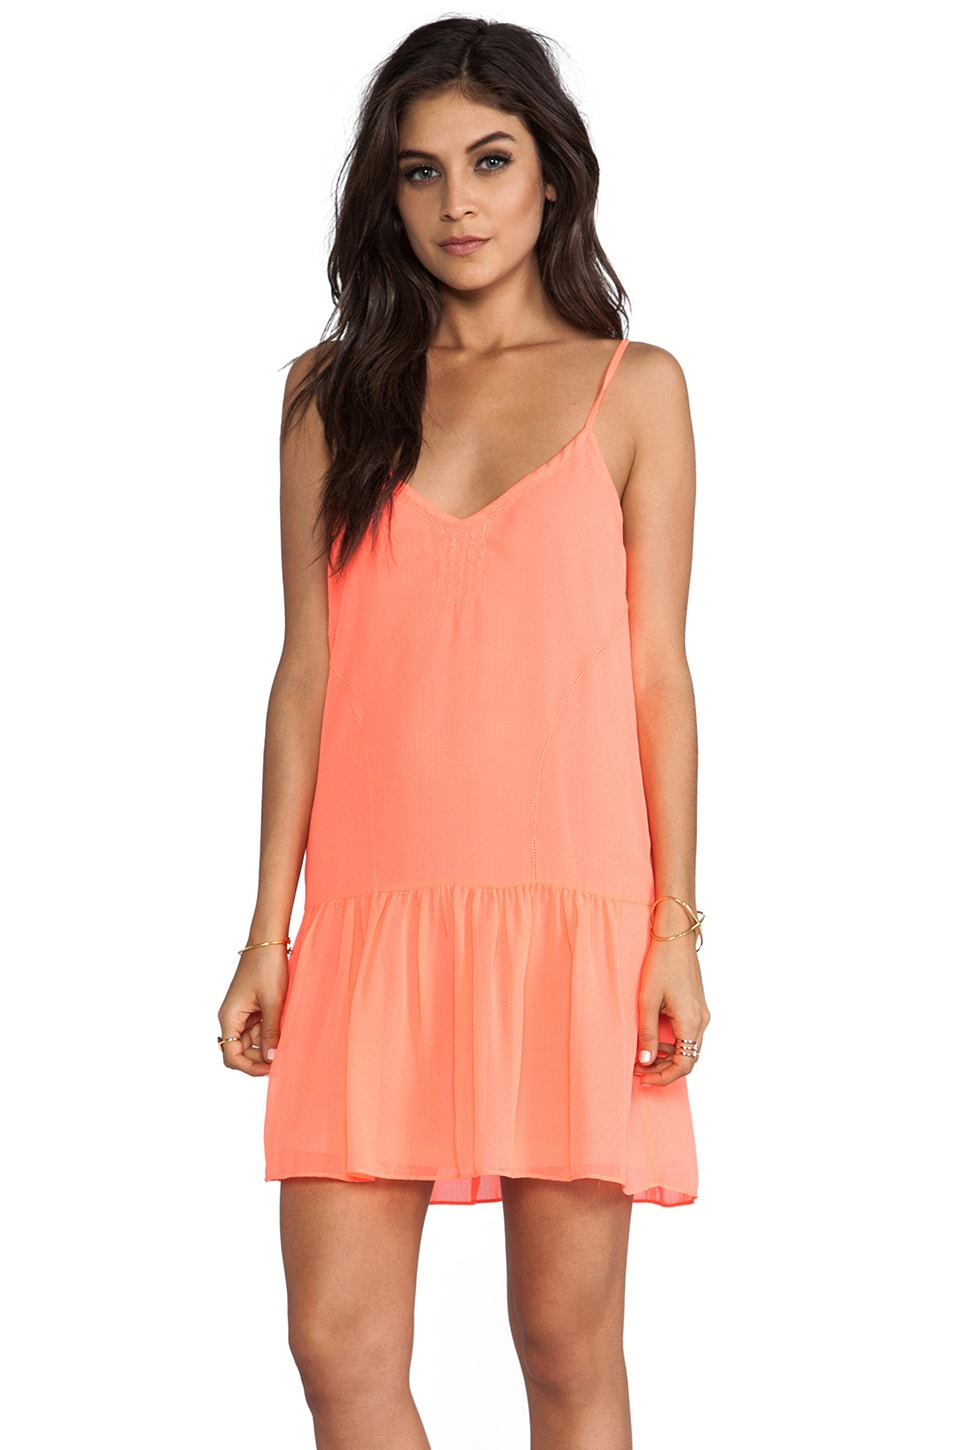 Dolce Vita Tinsel Dress in Neon Coral